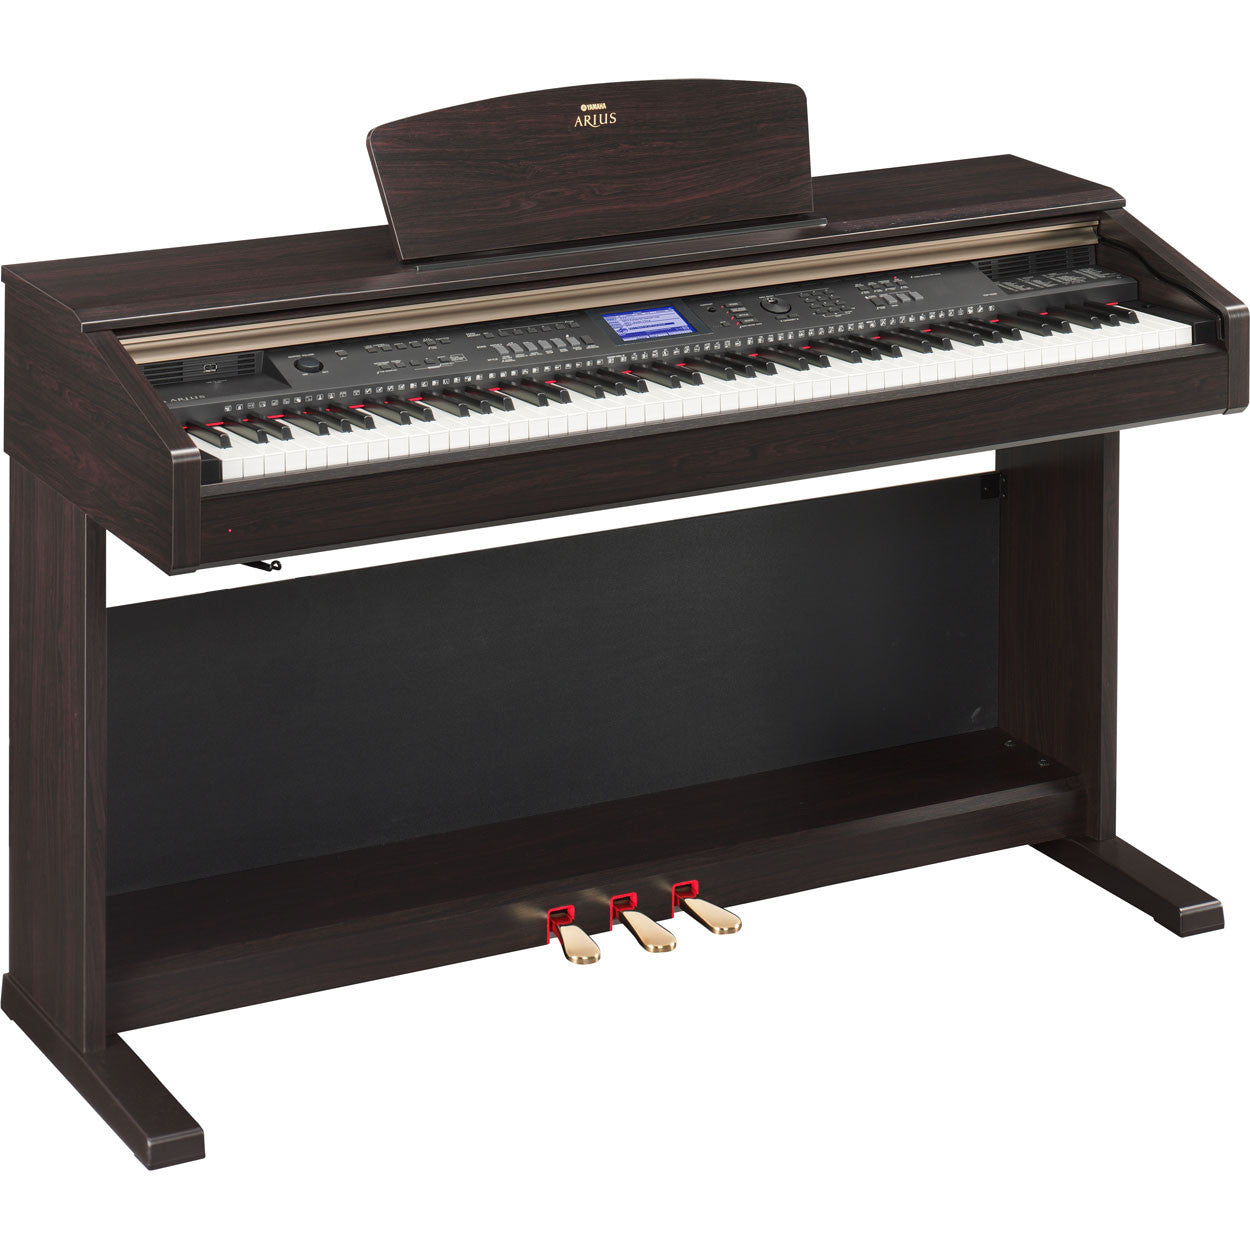 Yamaha ydp v240 88 key piano on sale music experience online for Yamaha arius ydp v240 review